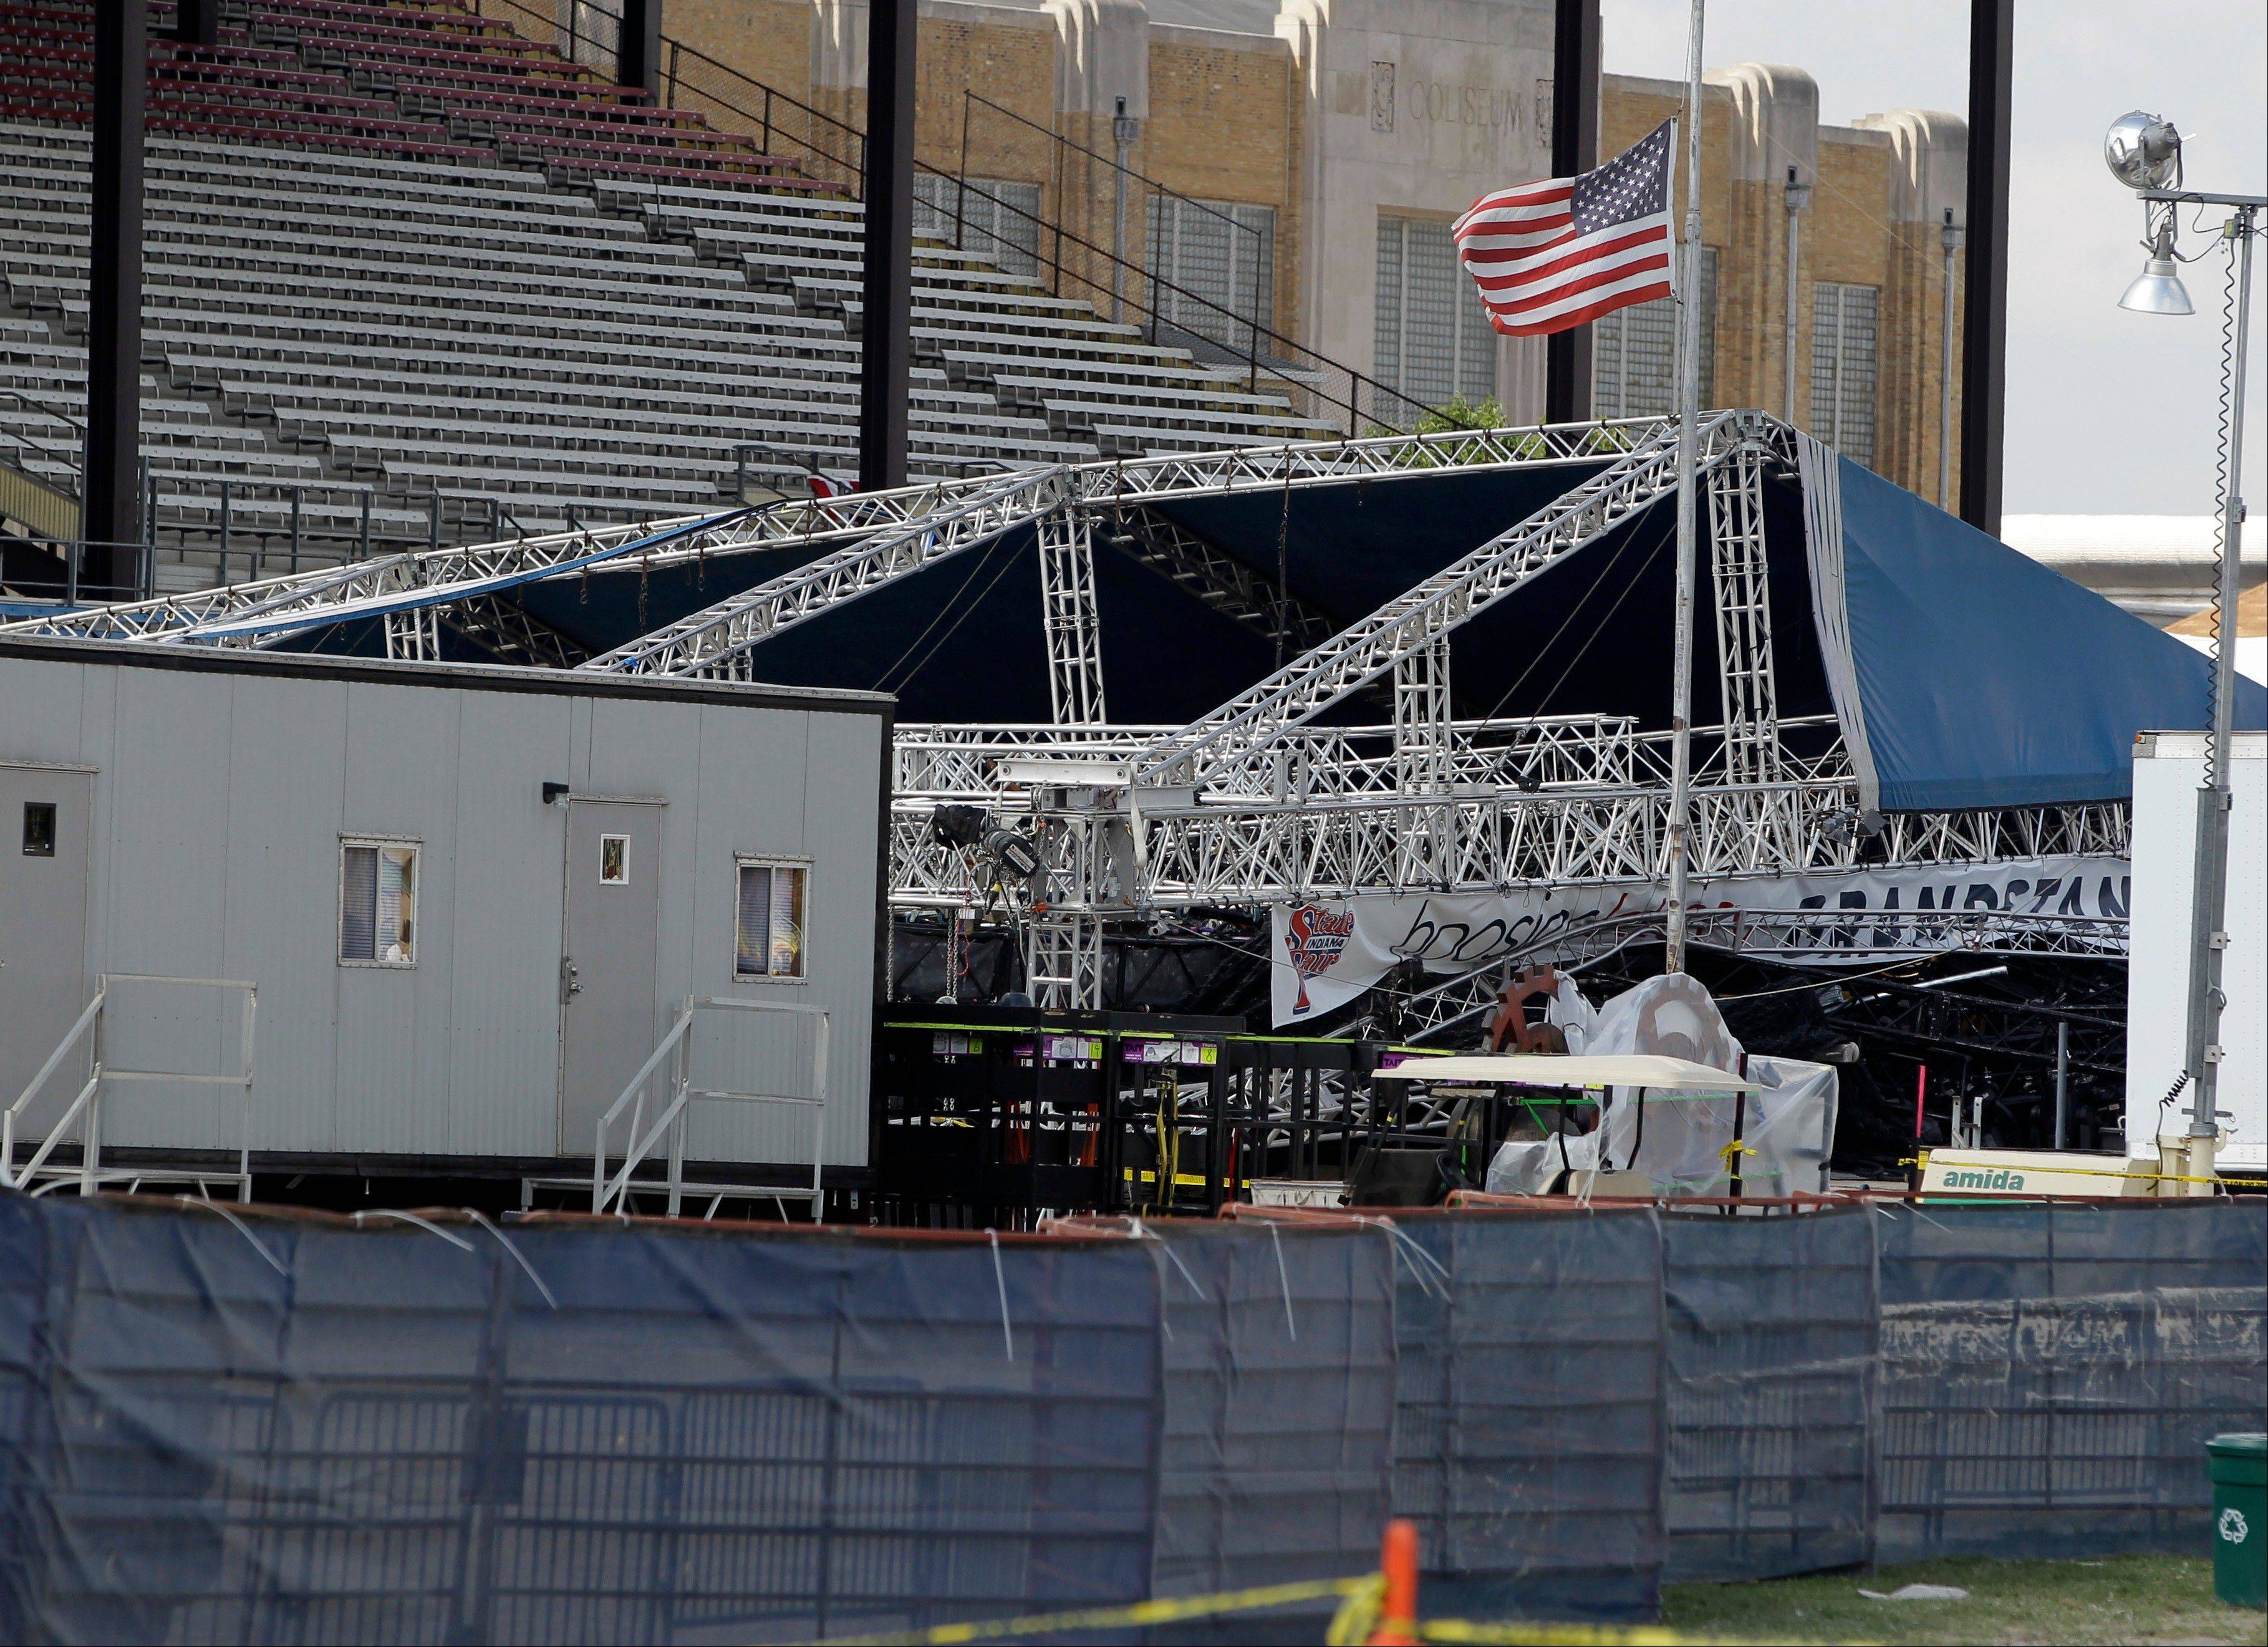 A flag flies at half-staff Monday near the collapsed stageat the Indiana State Fair in Indianapolis.